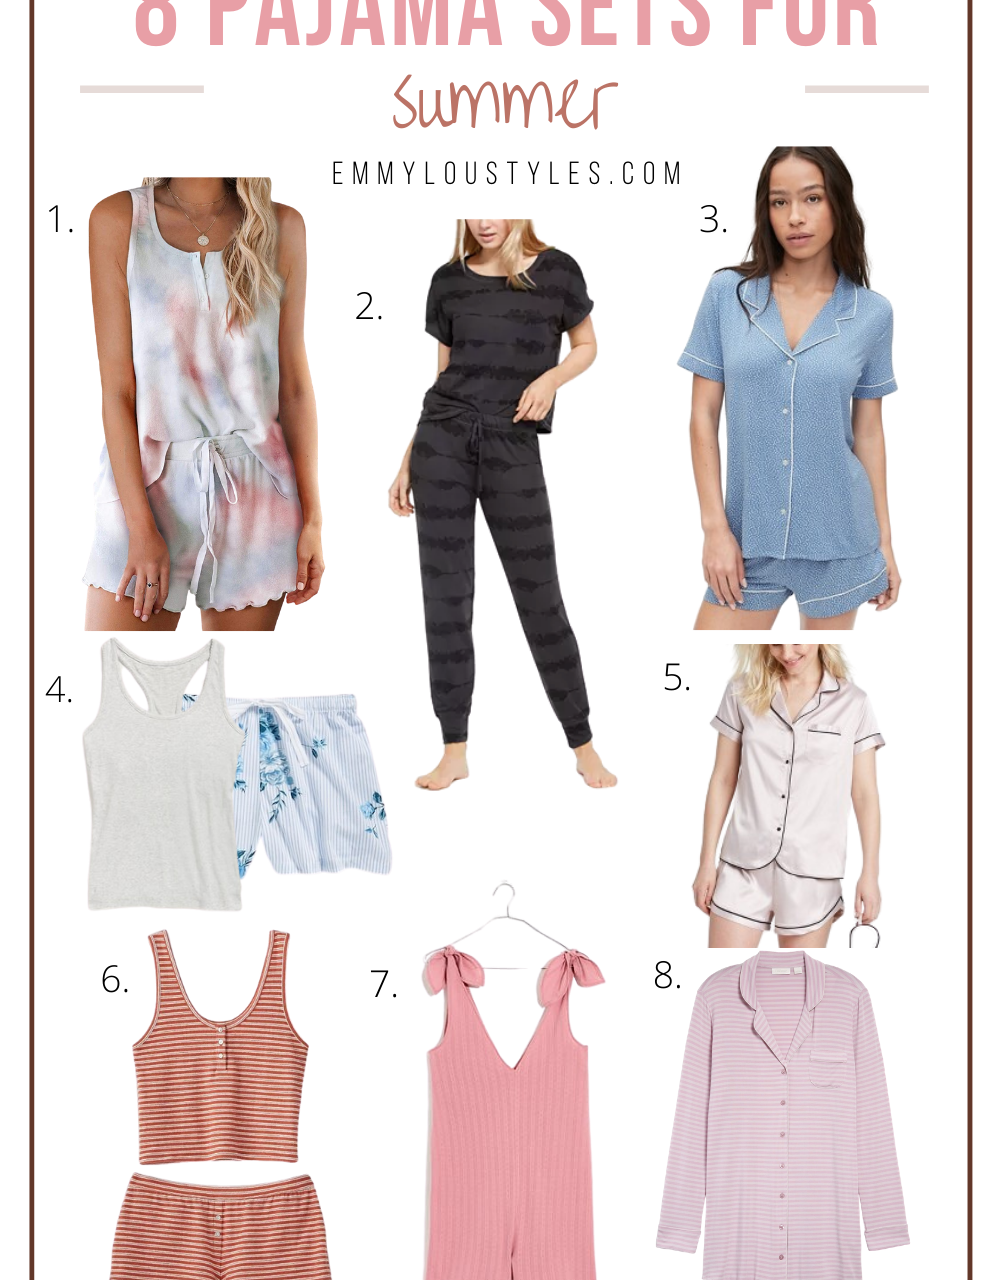 8 Pajama Sets for Summer